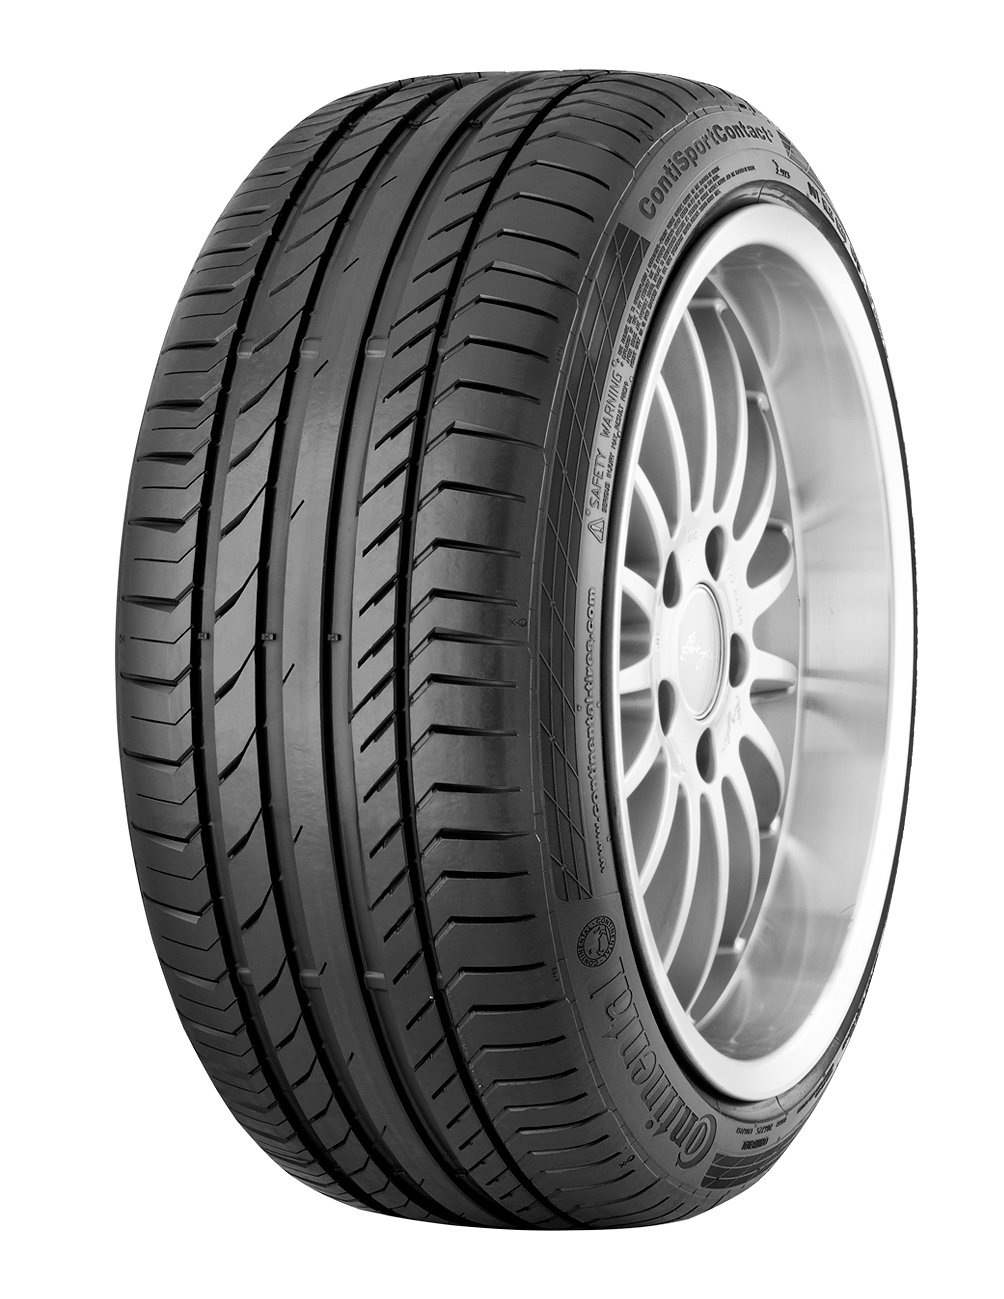 "Continental - Contisportcontact 5 - 245/40R18 97Y - Summer Tyre (Car) - C/A/72""discontinued by manufacturer"" Continental Corporation"